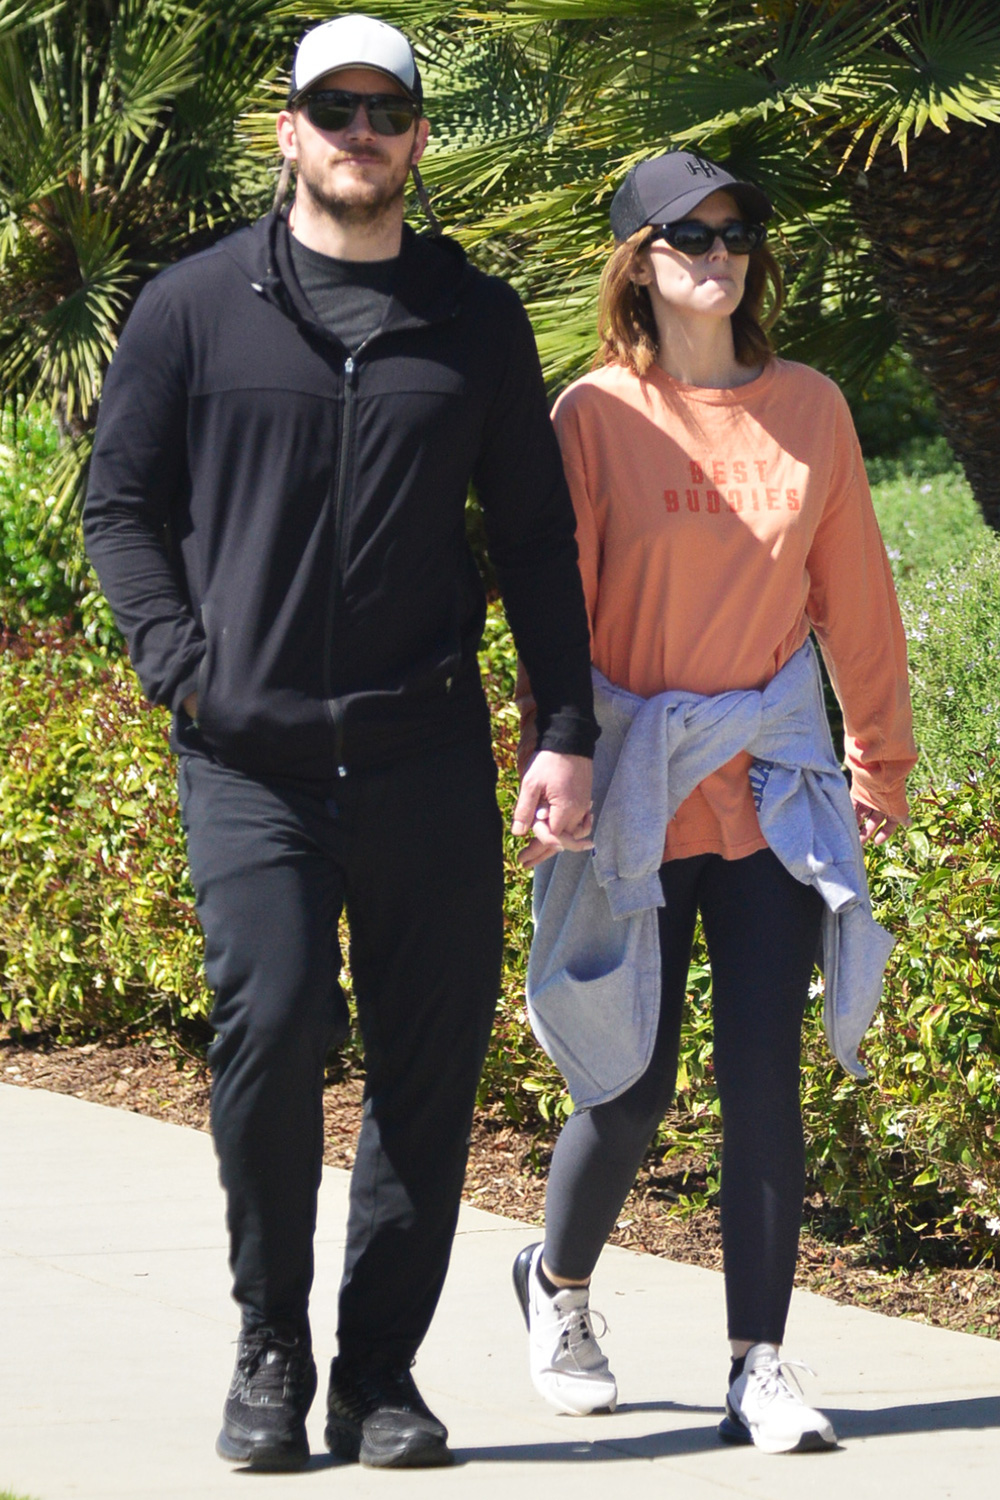 Chris Pratt And Wife Katherine Schwarzenegger Pratt Hold Hands During The Coronavirus Outbreak As They Go For A Walk Overlooking The Pacific Ocean Near Their Santa Monica, Ca Home